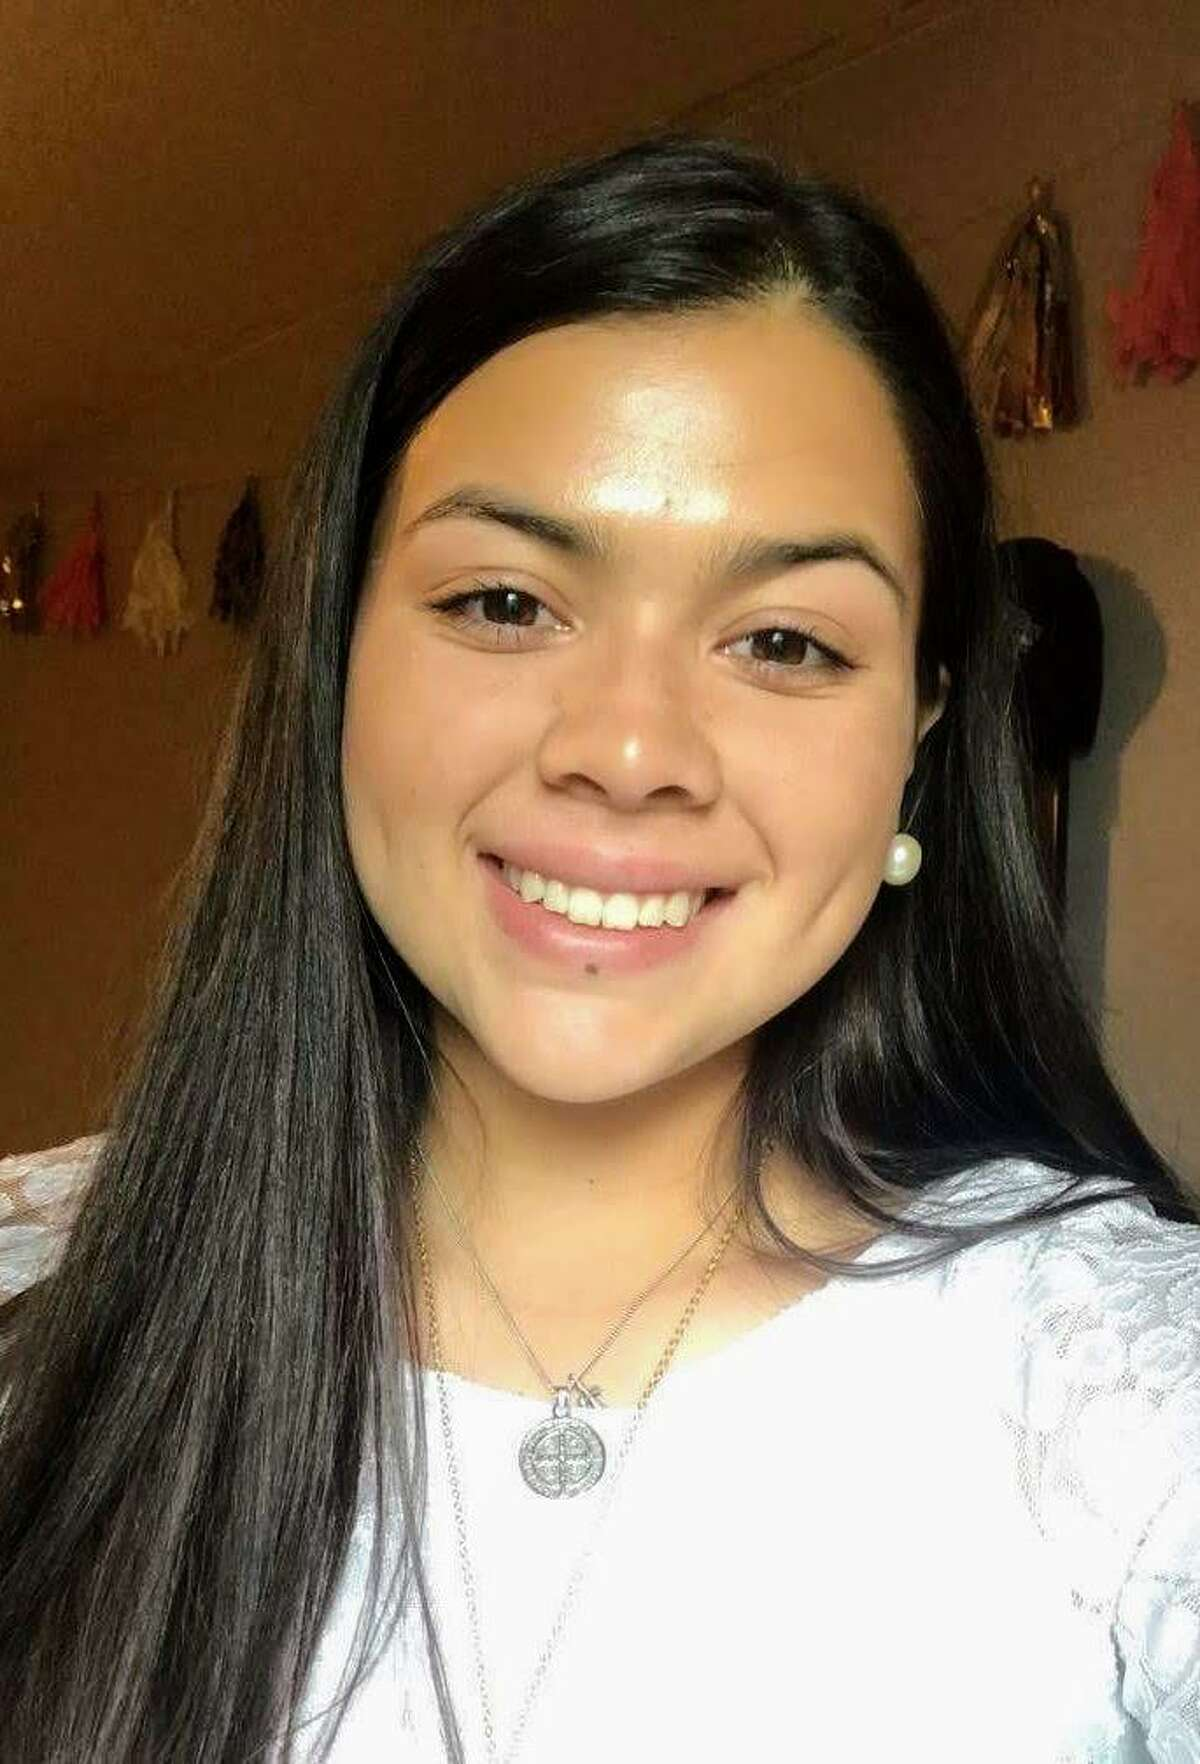 Southside High School senior Isabella Garcia was surprised with a $40,000 college scholarship from the College Board.